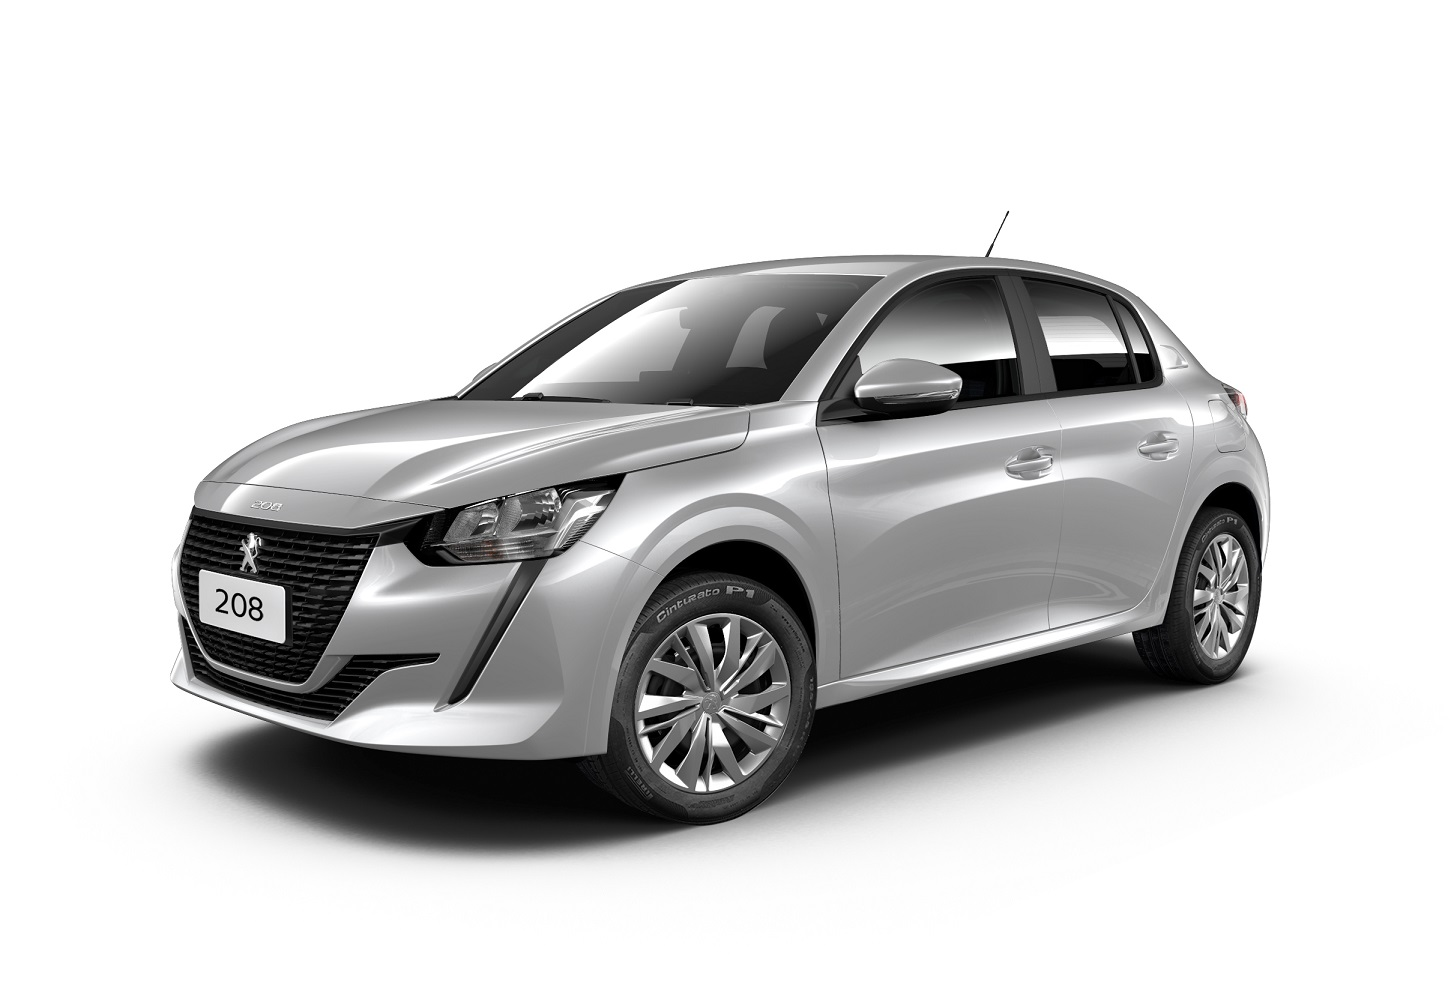 peugeot 208 like pack cinza lateral